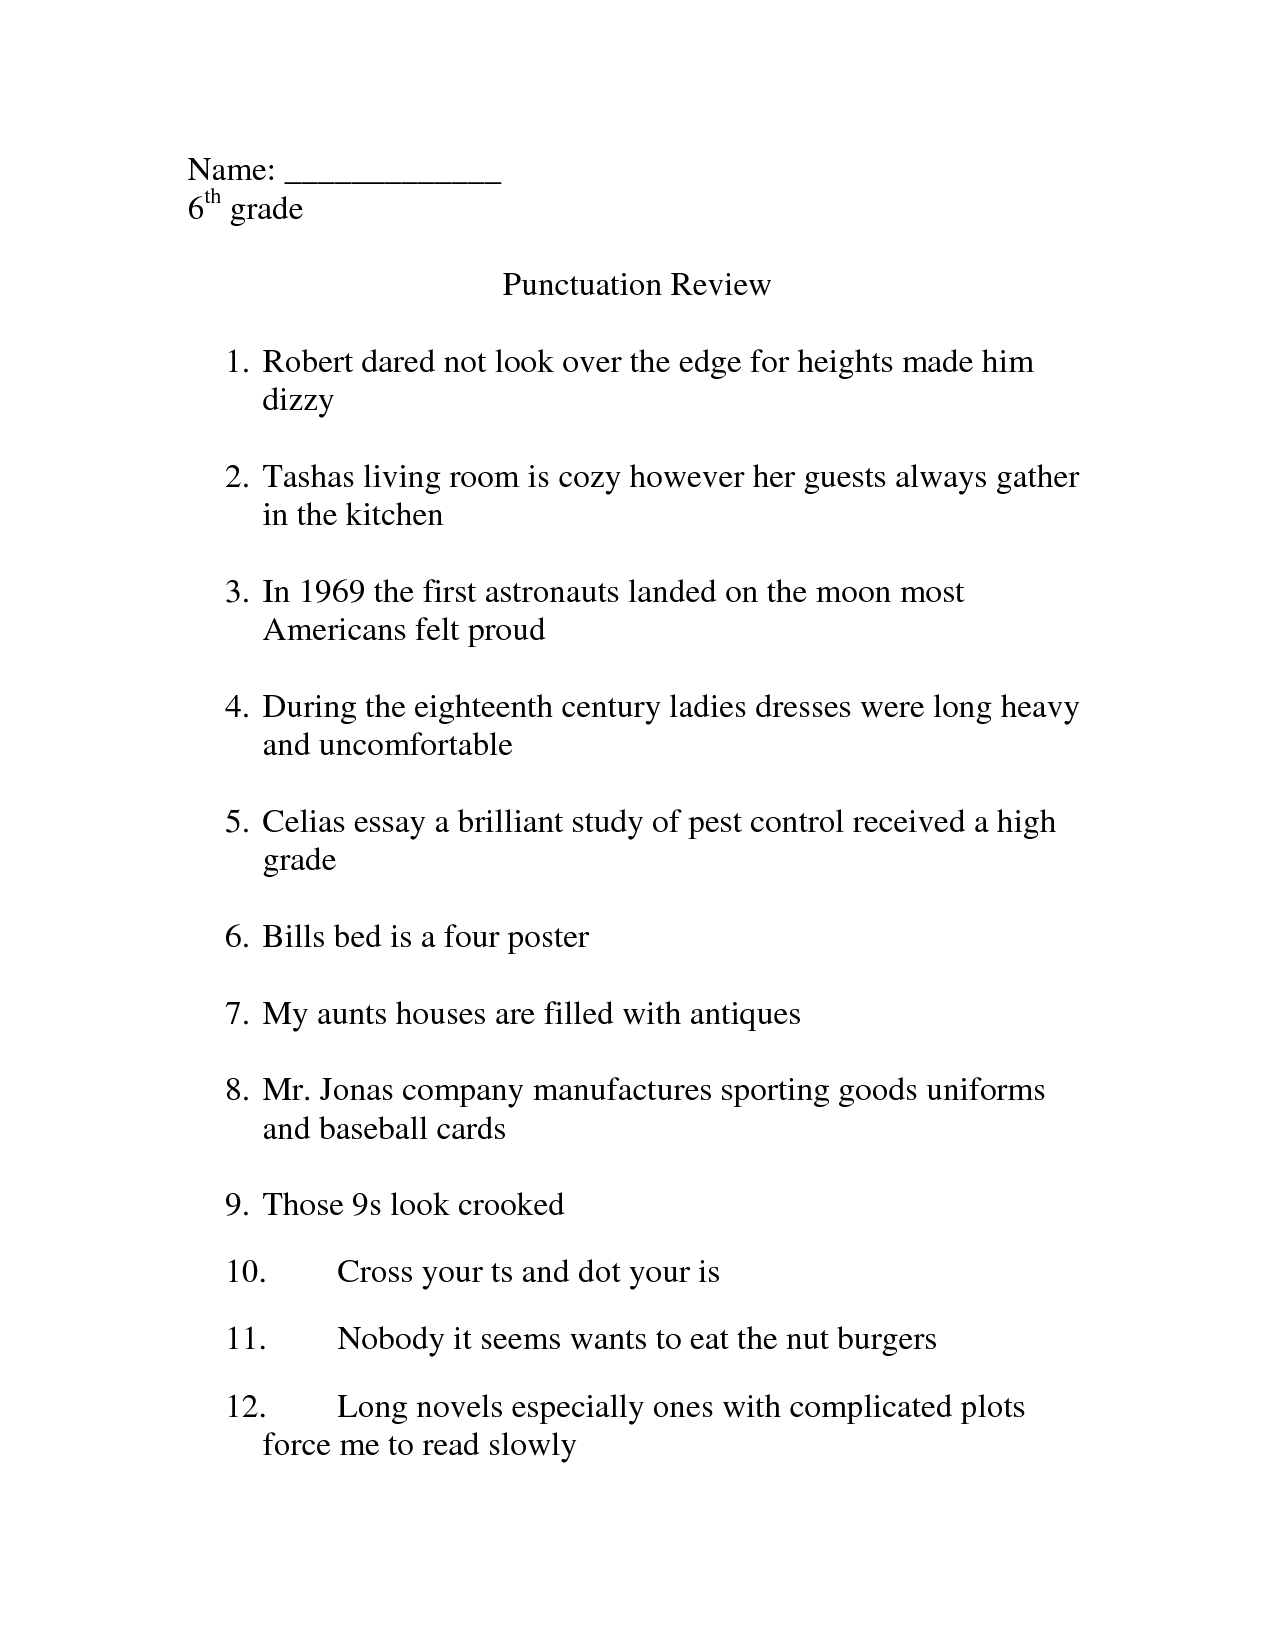 6th Grade English Grammar Worksheets